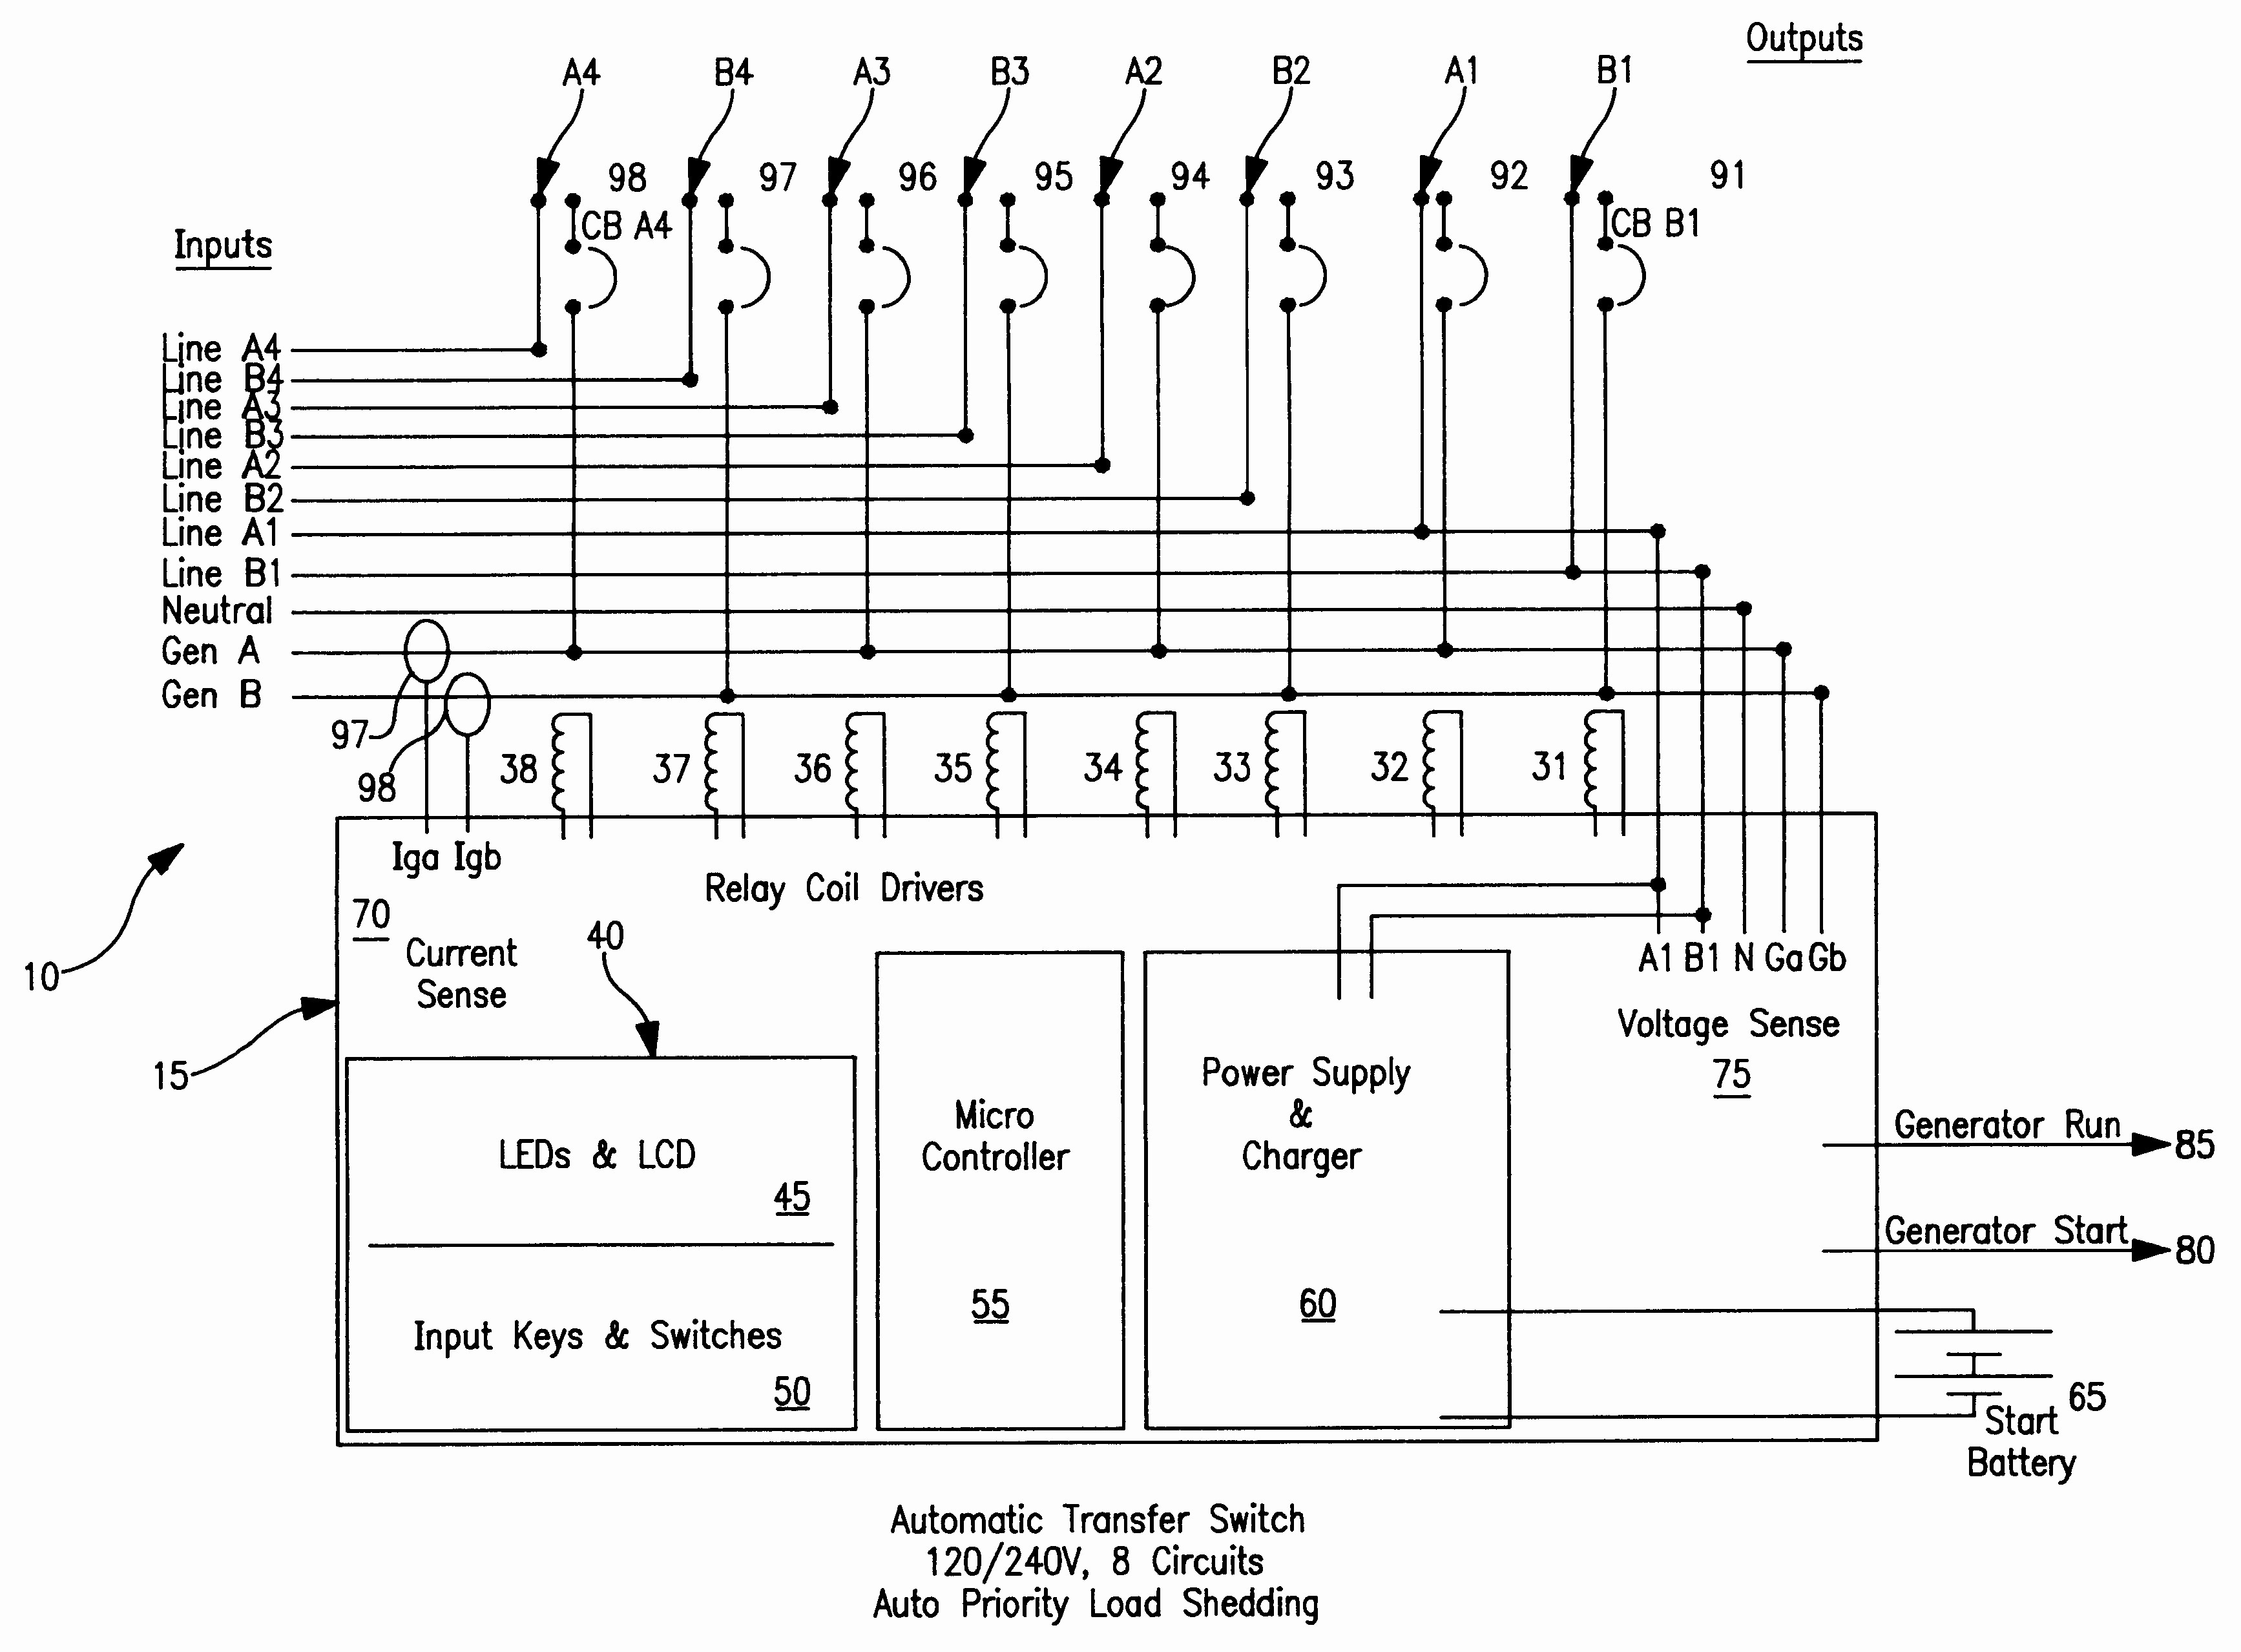 Asco 7000 Series Automatic Transfer Switch Wiring Diagram Reference - Generac Transfer Switch Wiring Diagram